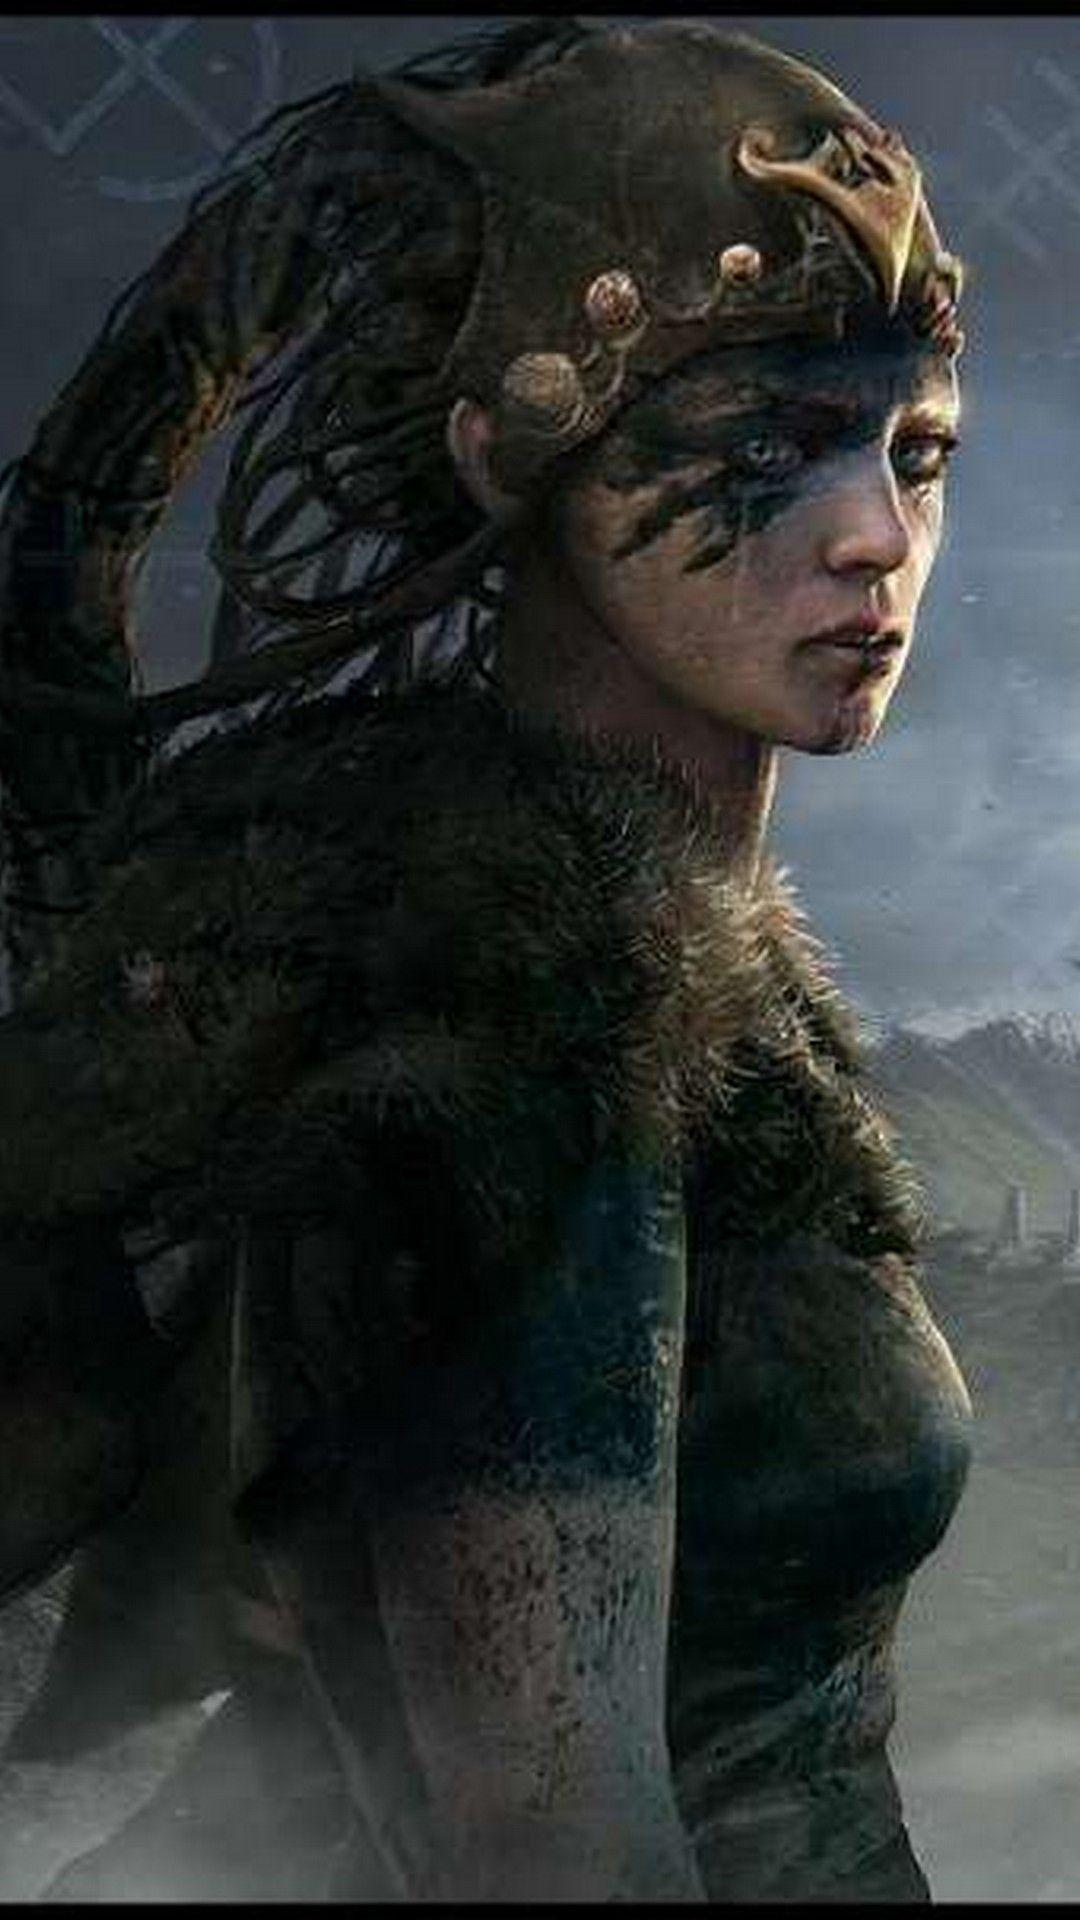 Hellblade Senua's Sacrifice Wallpapers For iPhone X